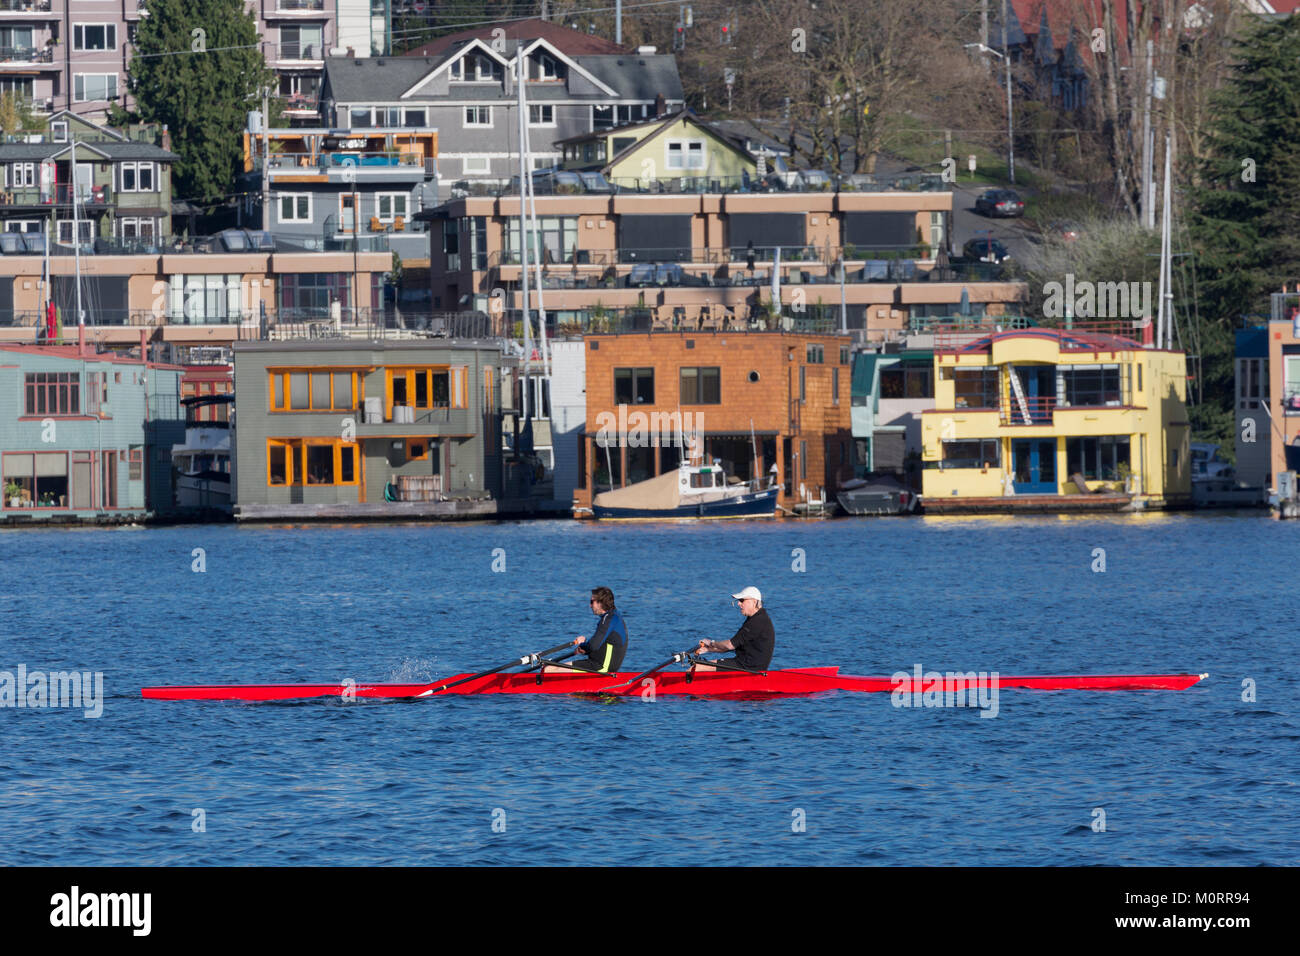 Rowing on Lake Union with houseboats in the background, Seattle, Washington, USA - Stock Image